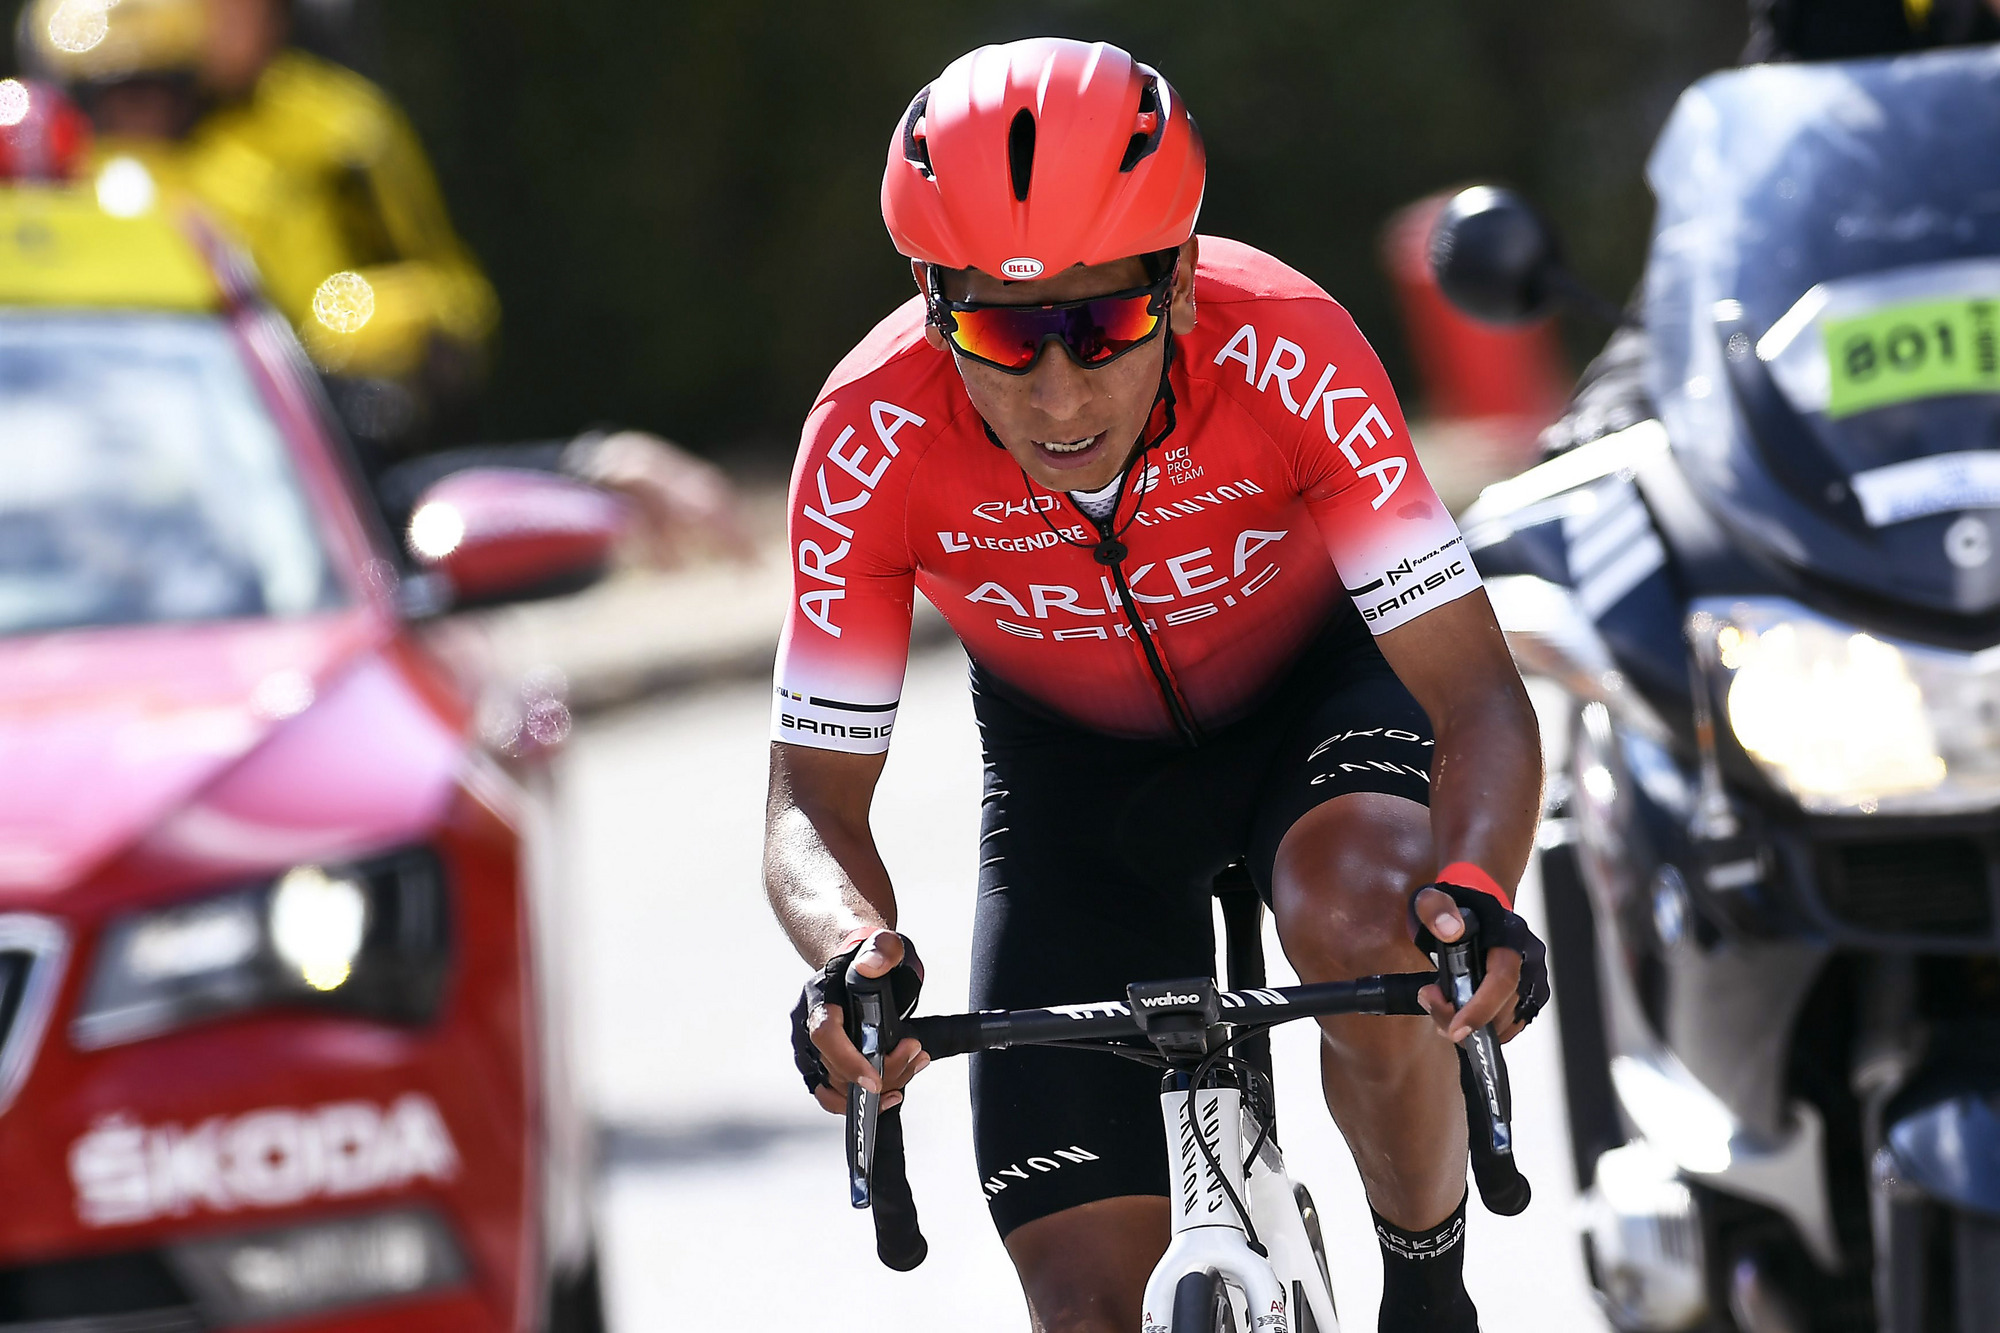 Could new Arkéa-Samsic signing Nairo Quintana this year mount a serious threat to the Team Ineos stranglehold on the Tour de France?